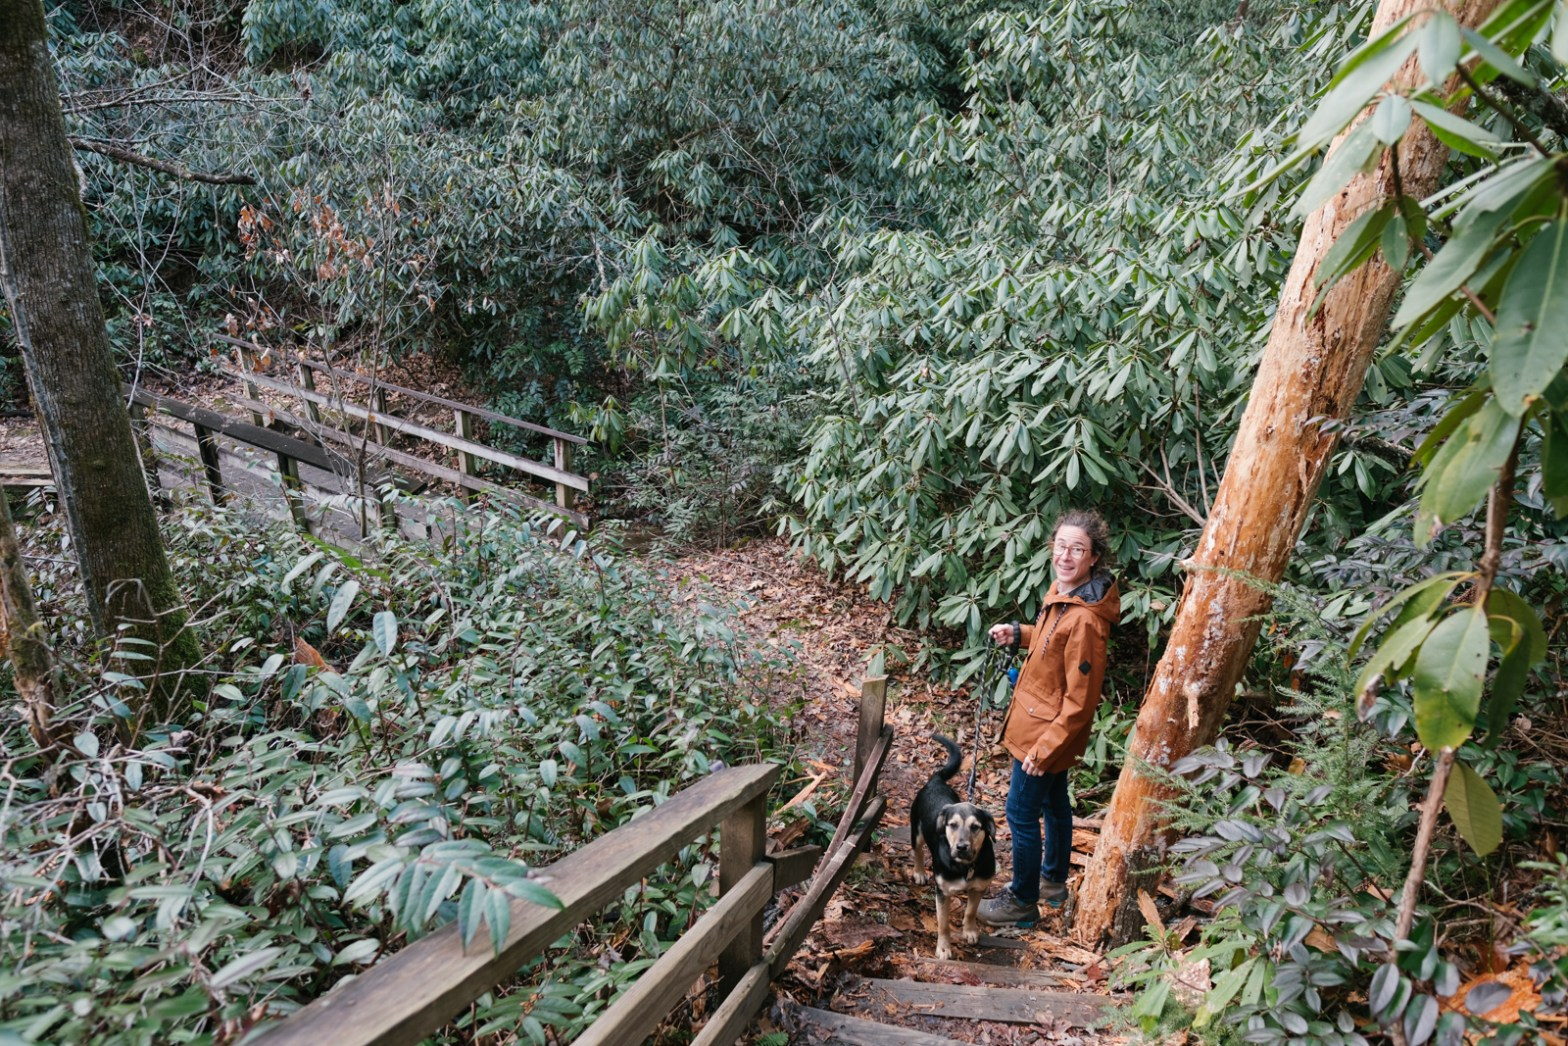 Caroline Whatley in Pisgah National Forest walking a black dog with a leash, surrounded by rhododendrons.